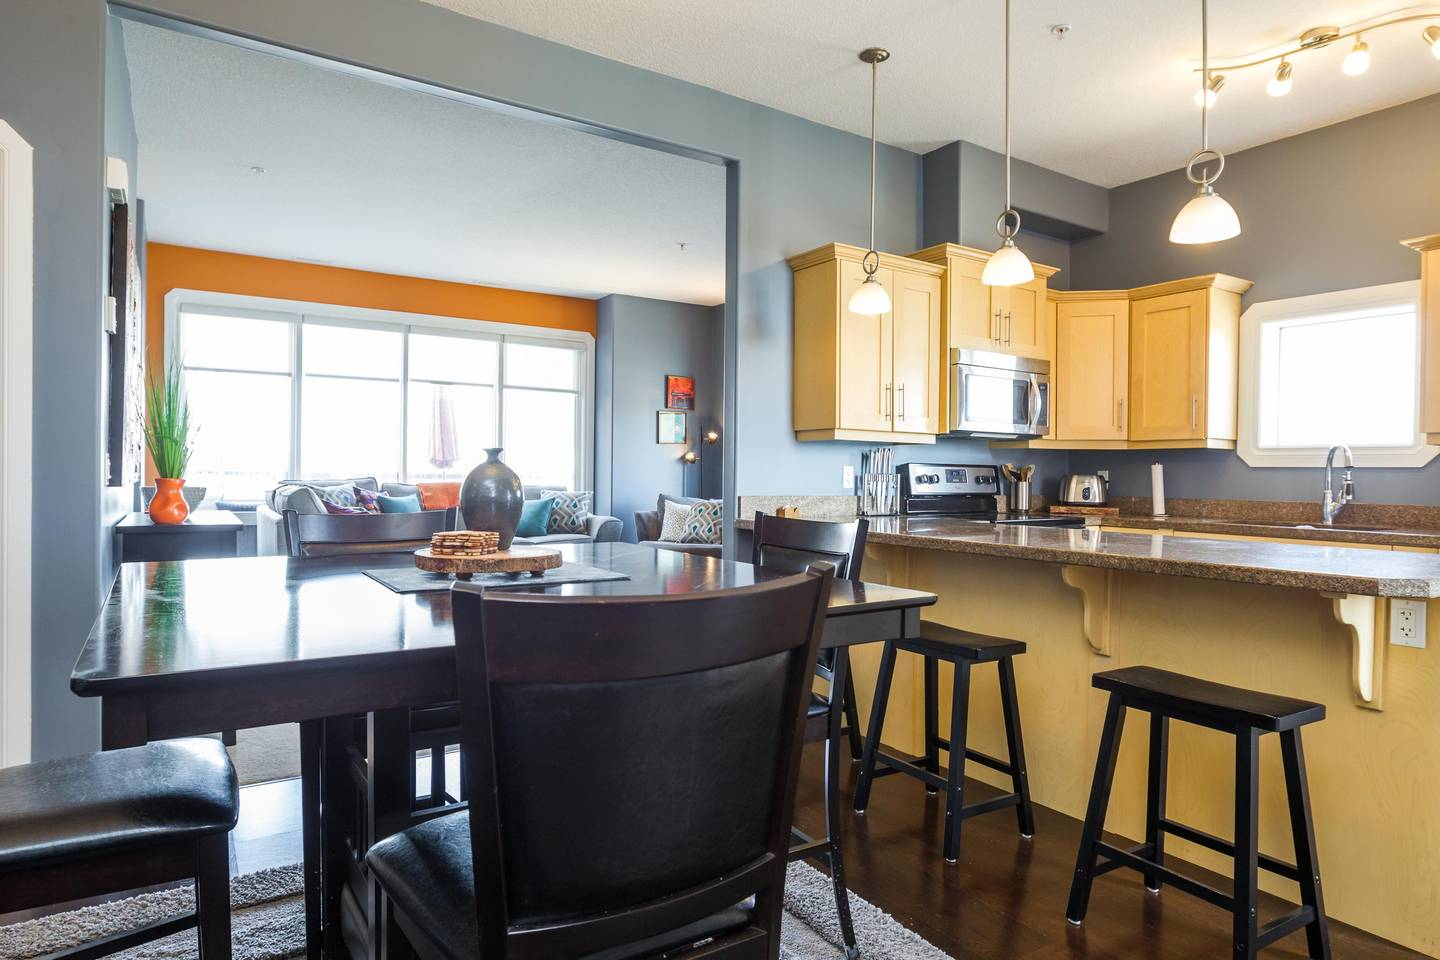 Apartment Luxury  2 Story Condo Near Rogers Place  Downtown photo 18620323